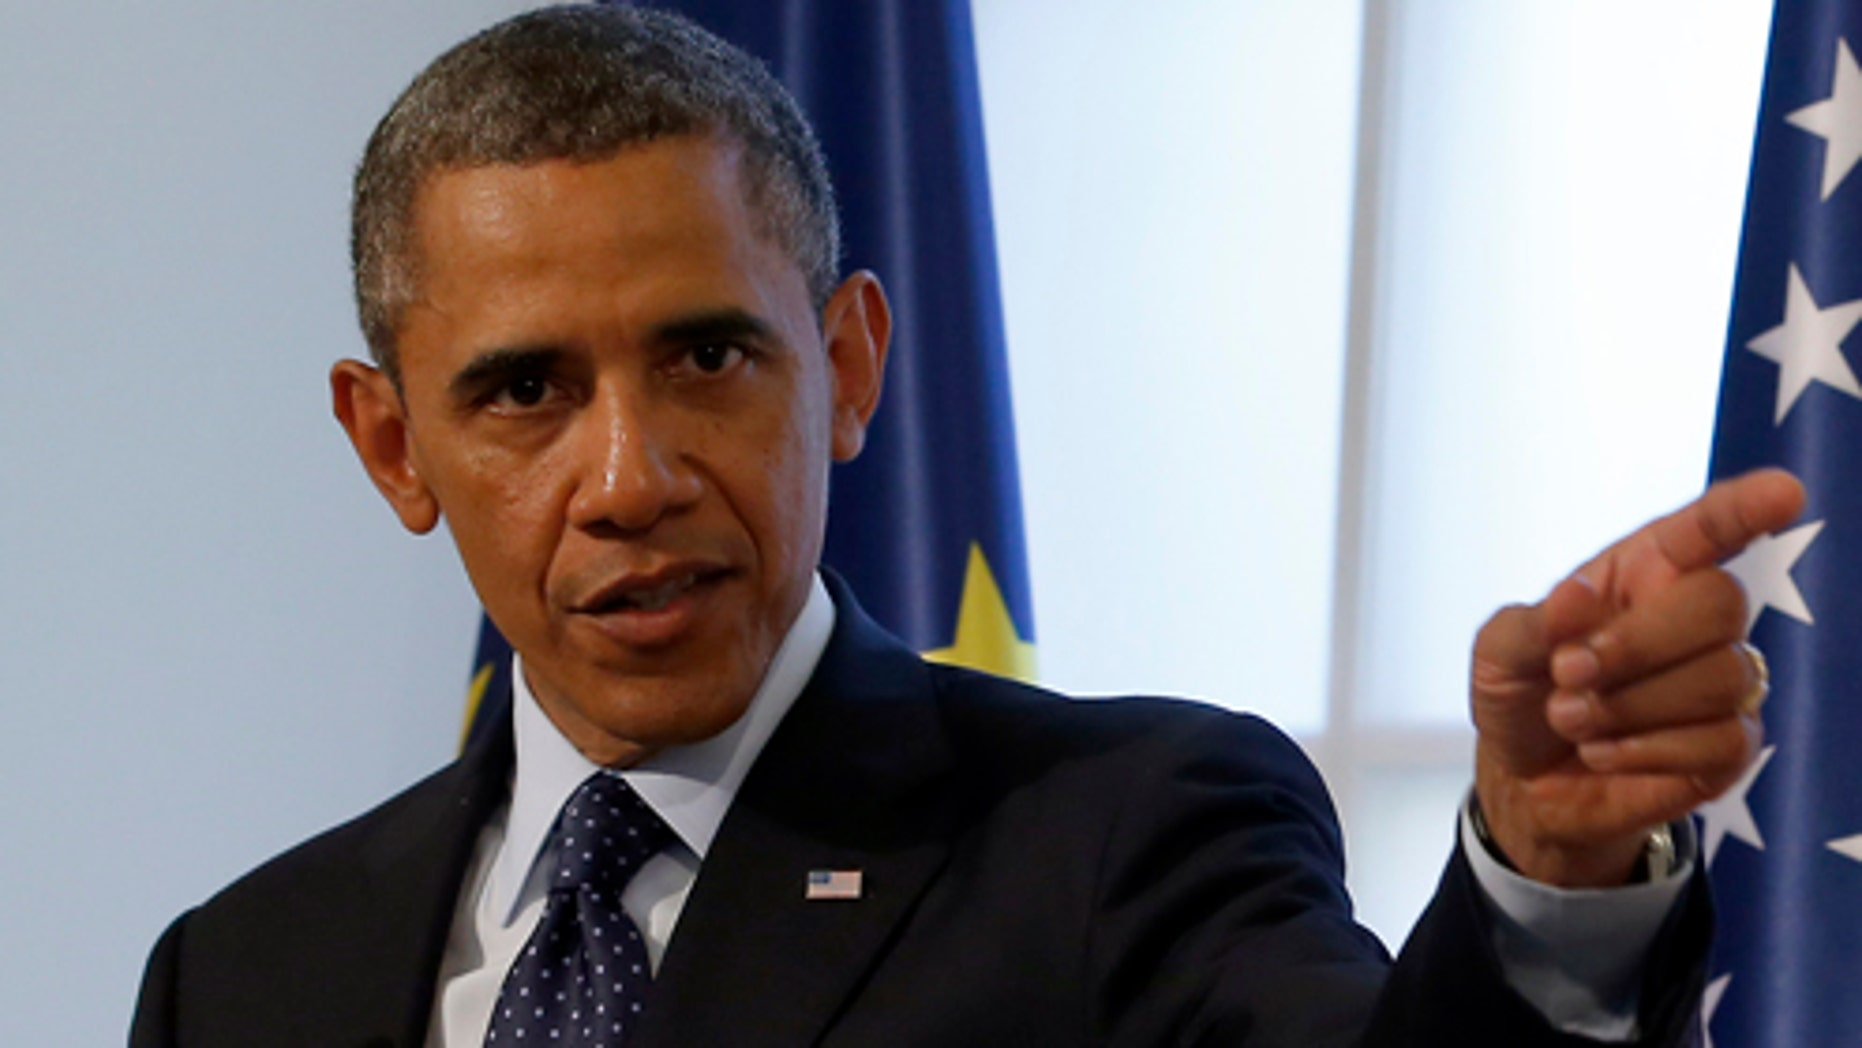 US President Barack Obama delivers a dinner speech at the Charlottenburg palace in Berlin Wednesday, June 19, 2013. Obama is on a two-day  visit to the German capital. (AP Photo/Michael Sohn, pool)